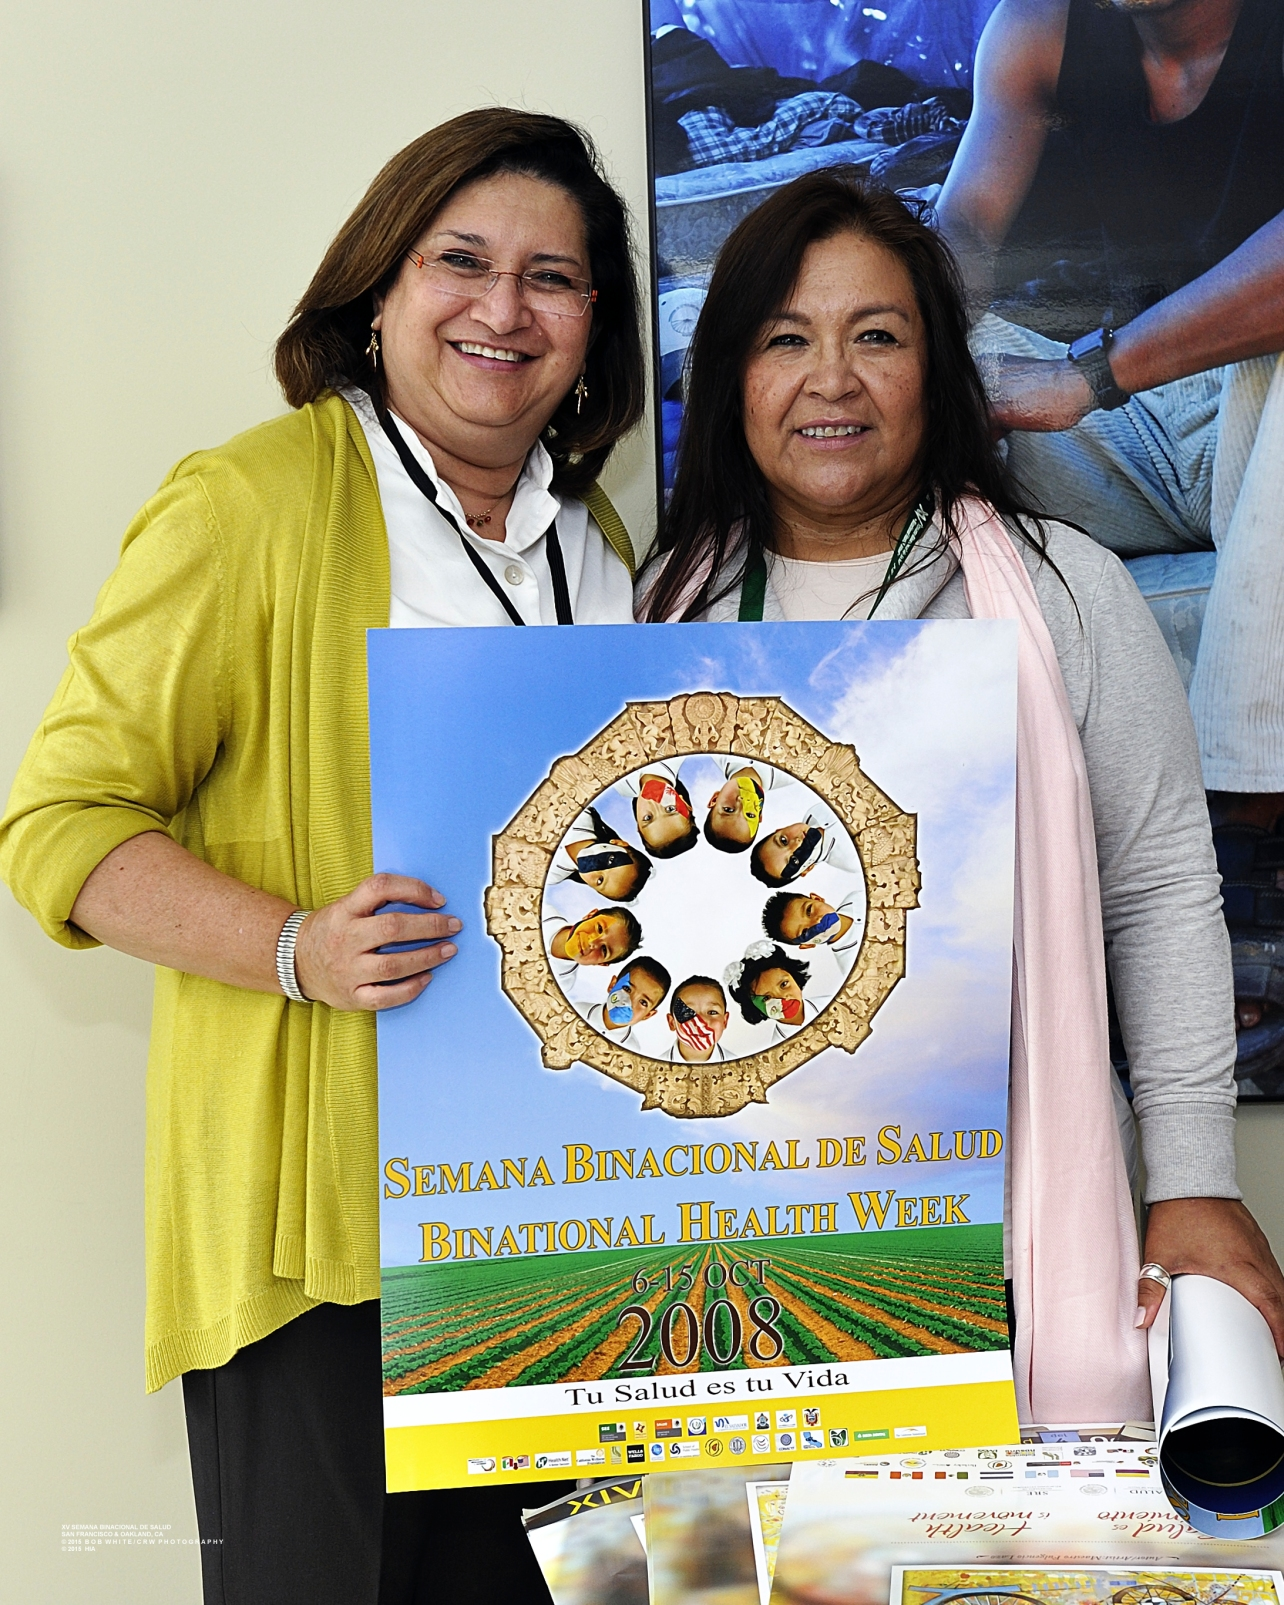 15th ANNUAL hEALTH WEEK CELEBRATION, SAN FRANCISCO AND OAKLAND CA.